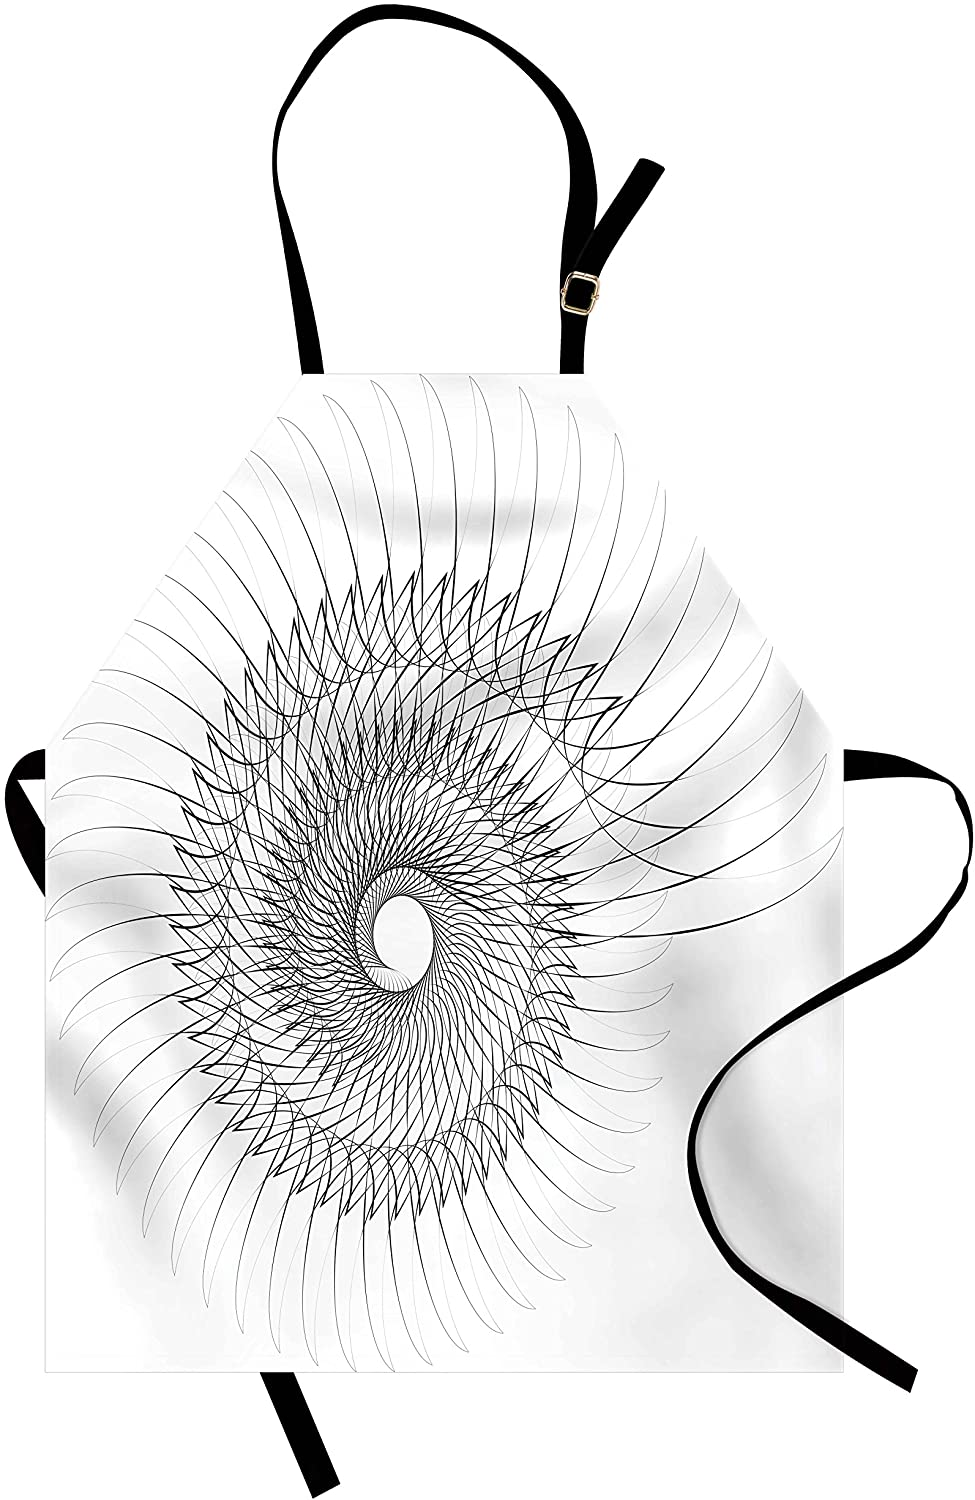 Ambesonne Spires Apron, Geometric Rotary Spiral with Helix Elements and Regular Lines Cyclic, Unisex Kitchen Bib Apron with Adjustable Neck for Cooking Baking Gardening, Grey